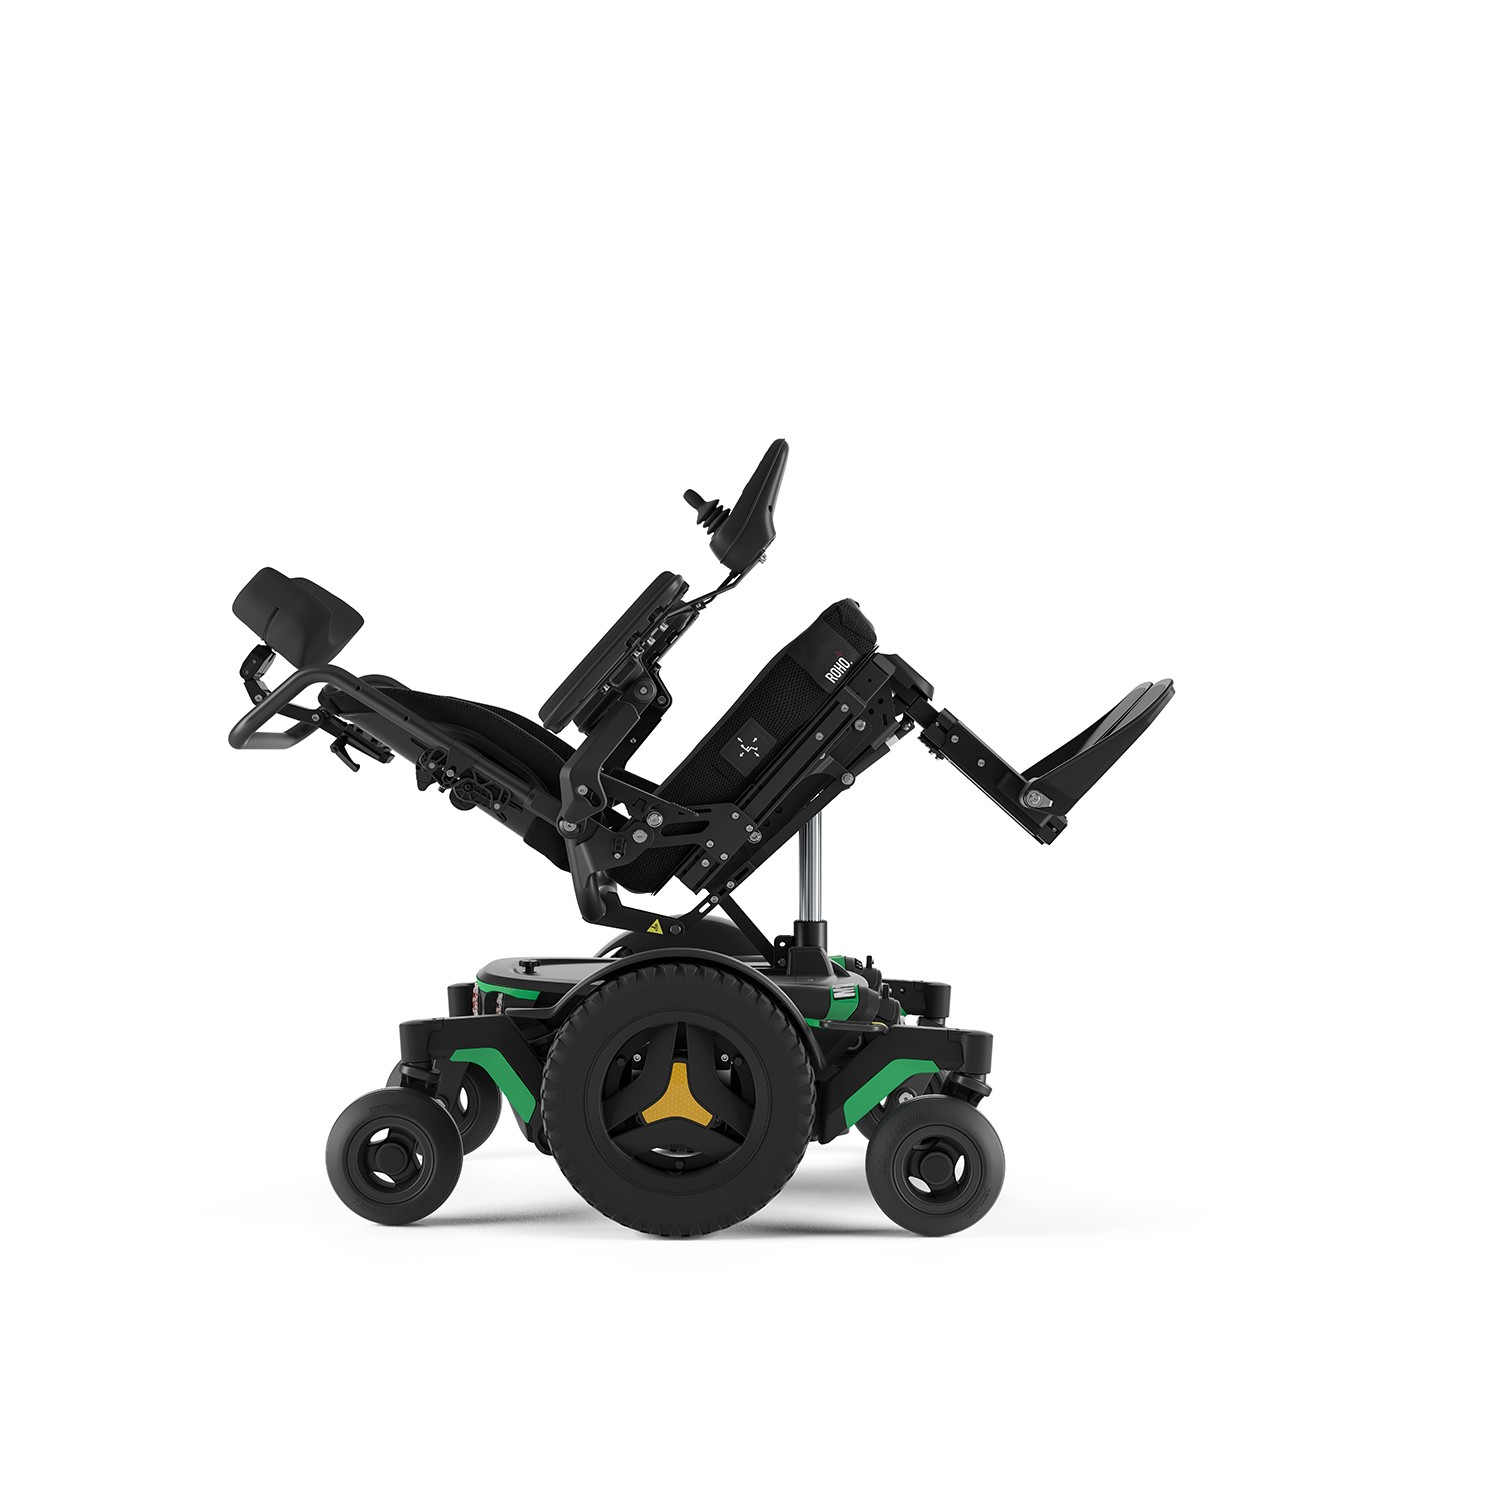 Elevated Permobil M1 Mid Wheel Power Wheelchair